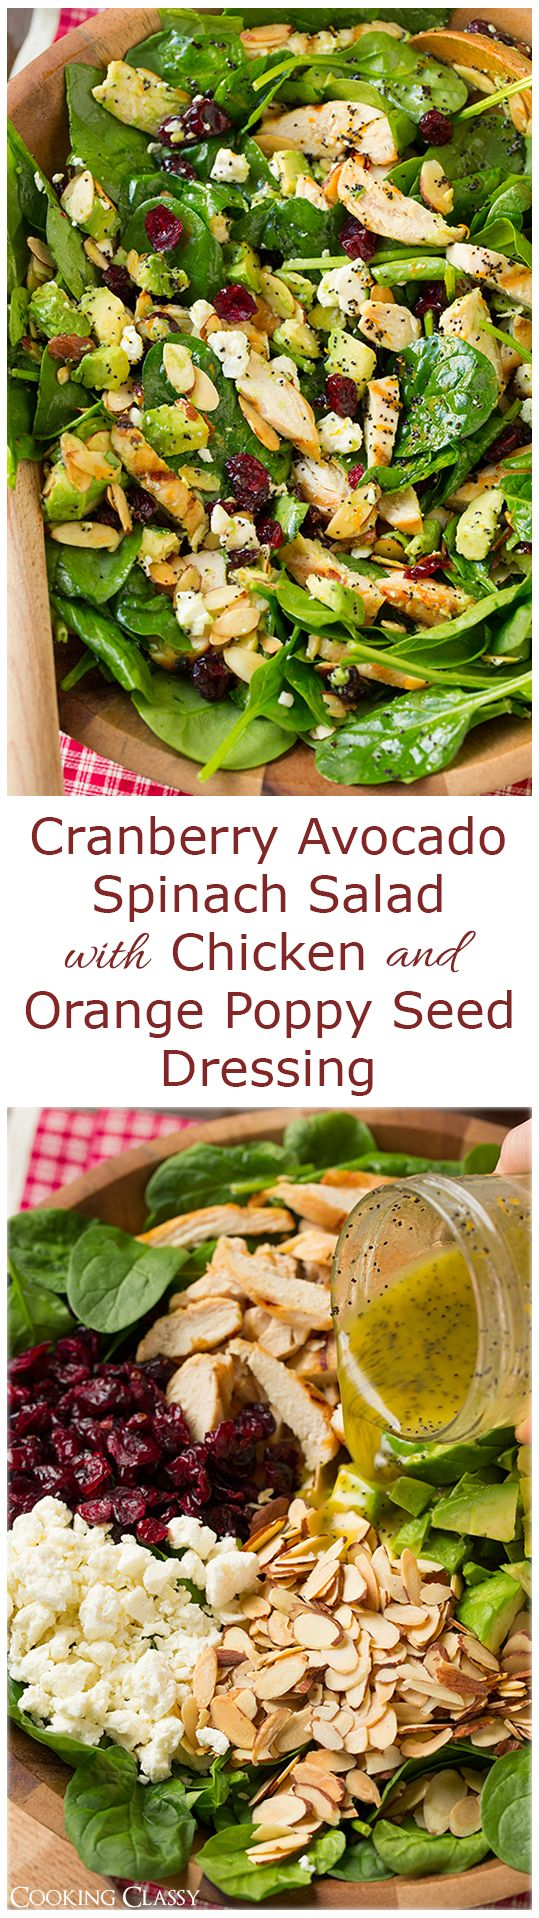 This dressing looks amazing!